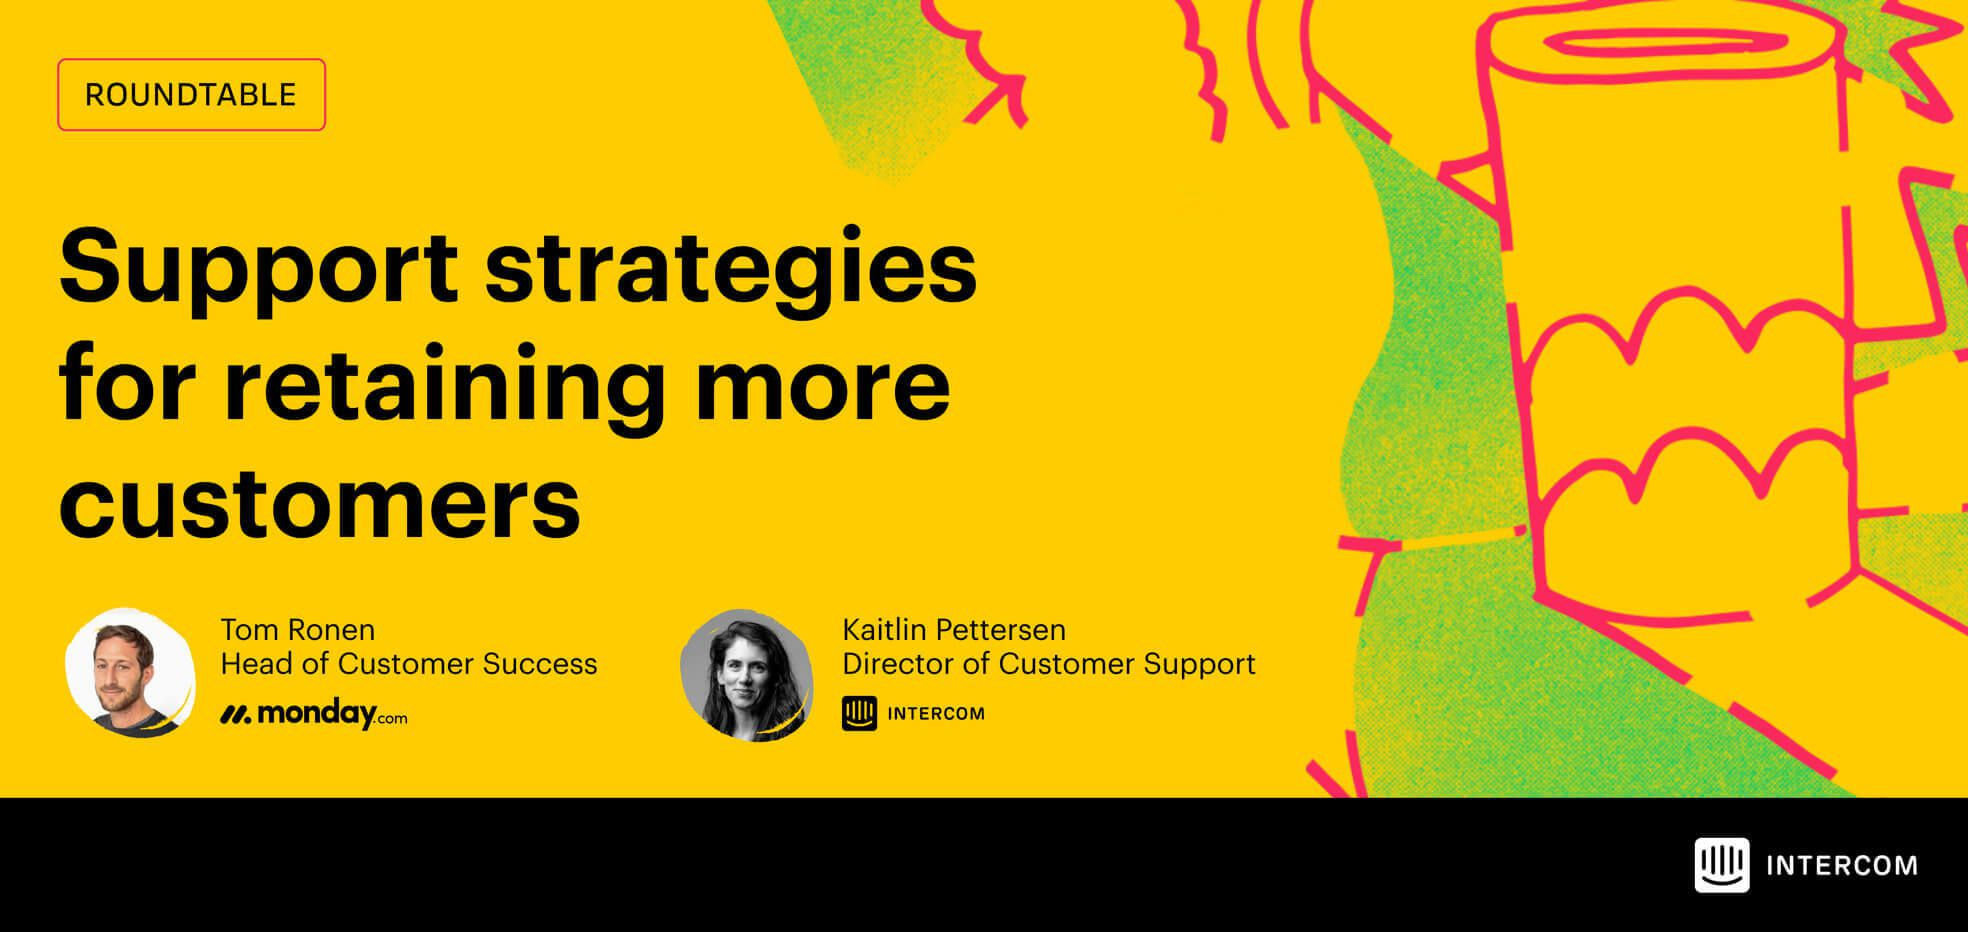 Intercom Webinar: Support strategies to retain more customer